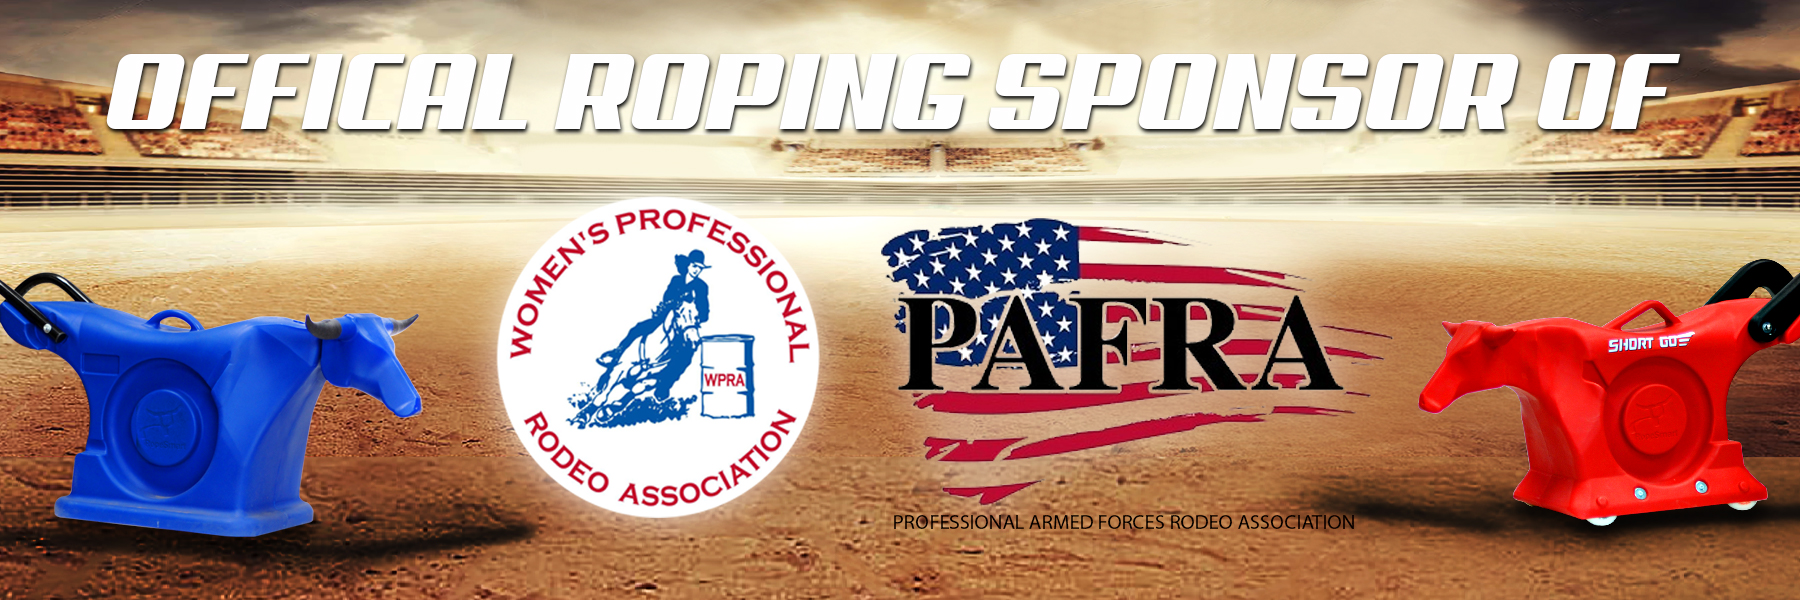 Official Roping Sponsor